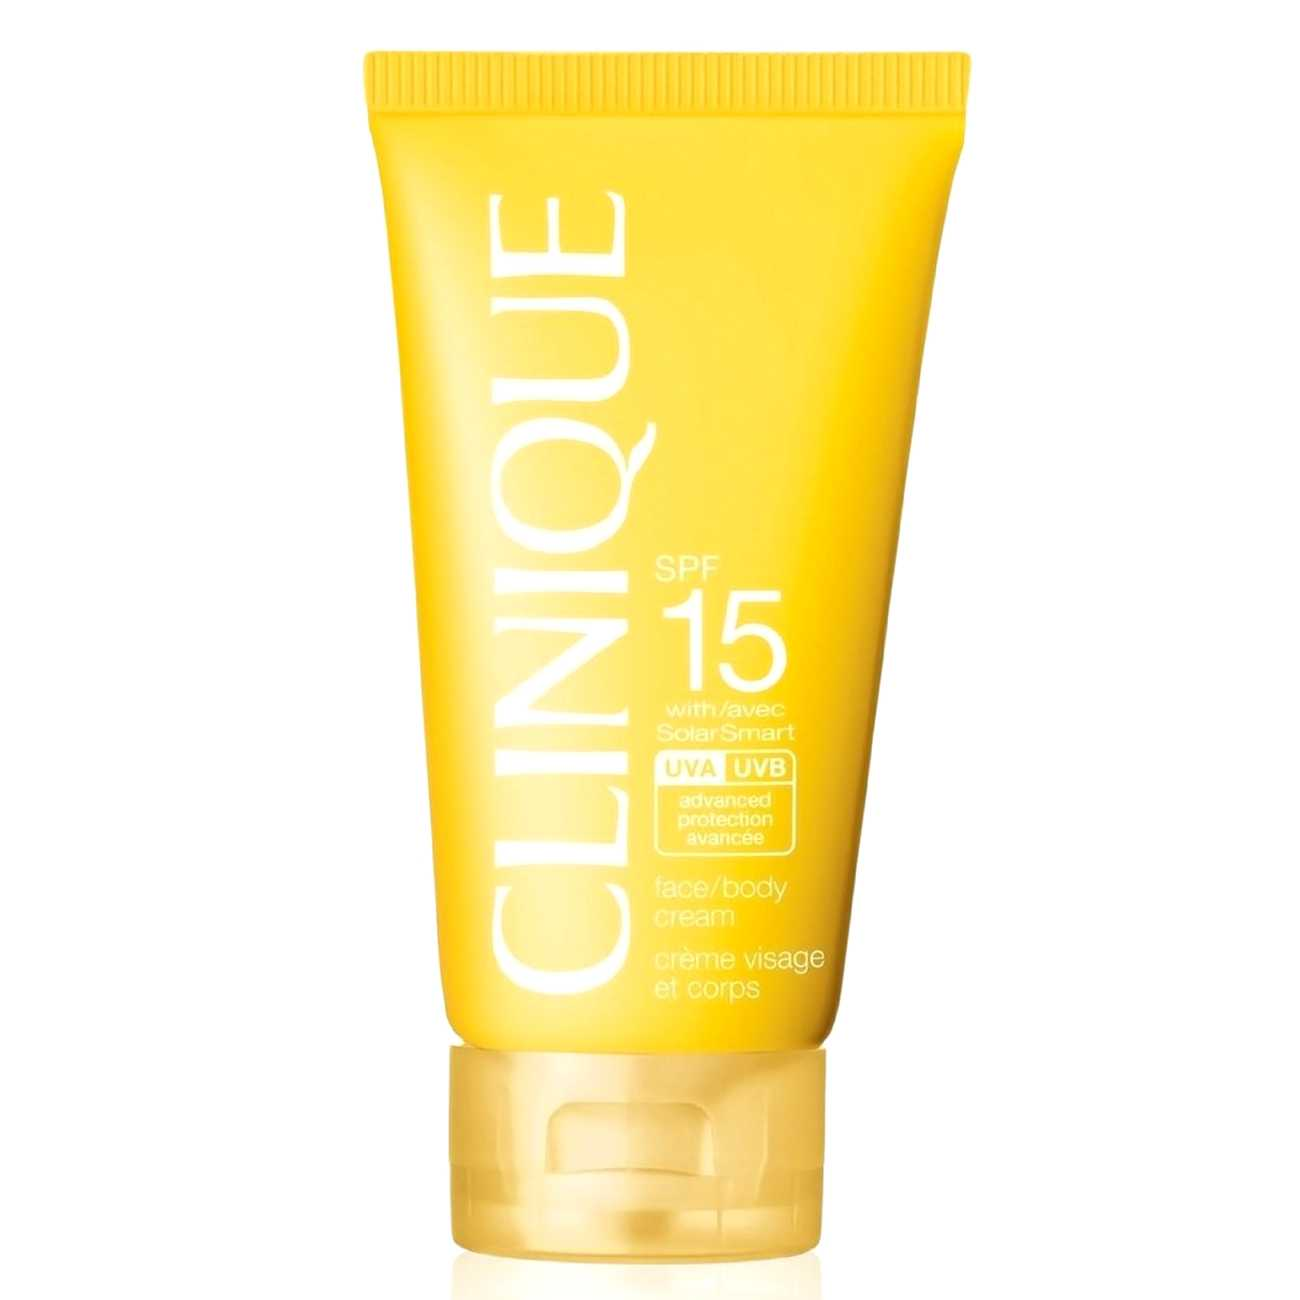 SUN FACE AND BODY 150 ML poza noua